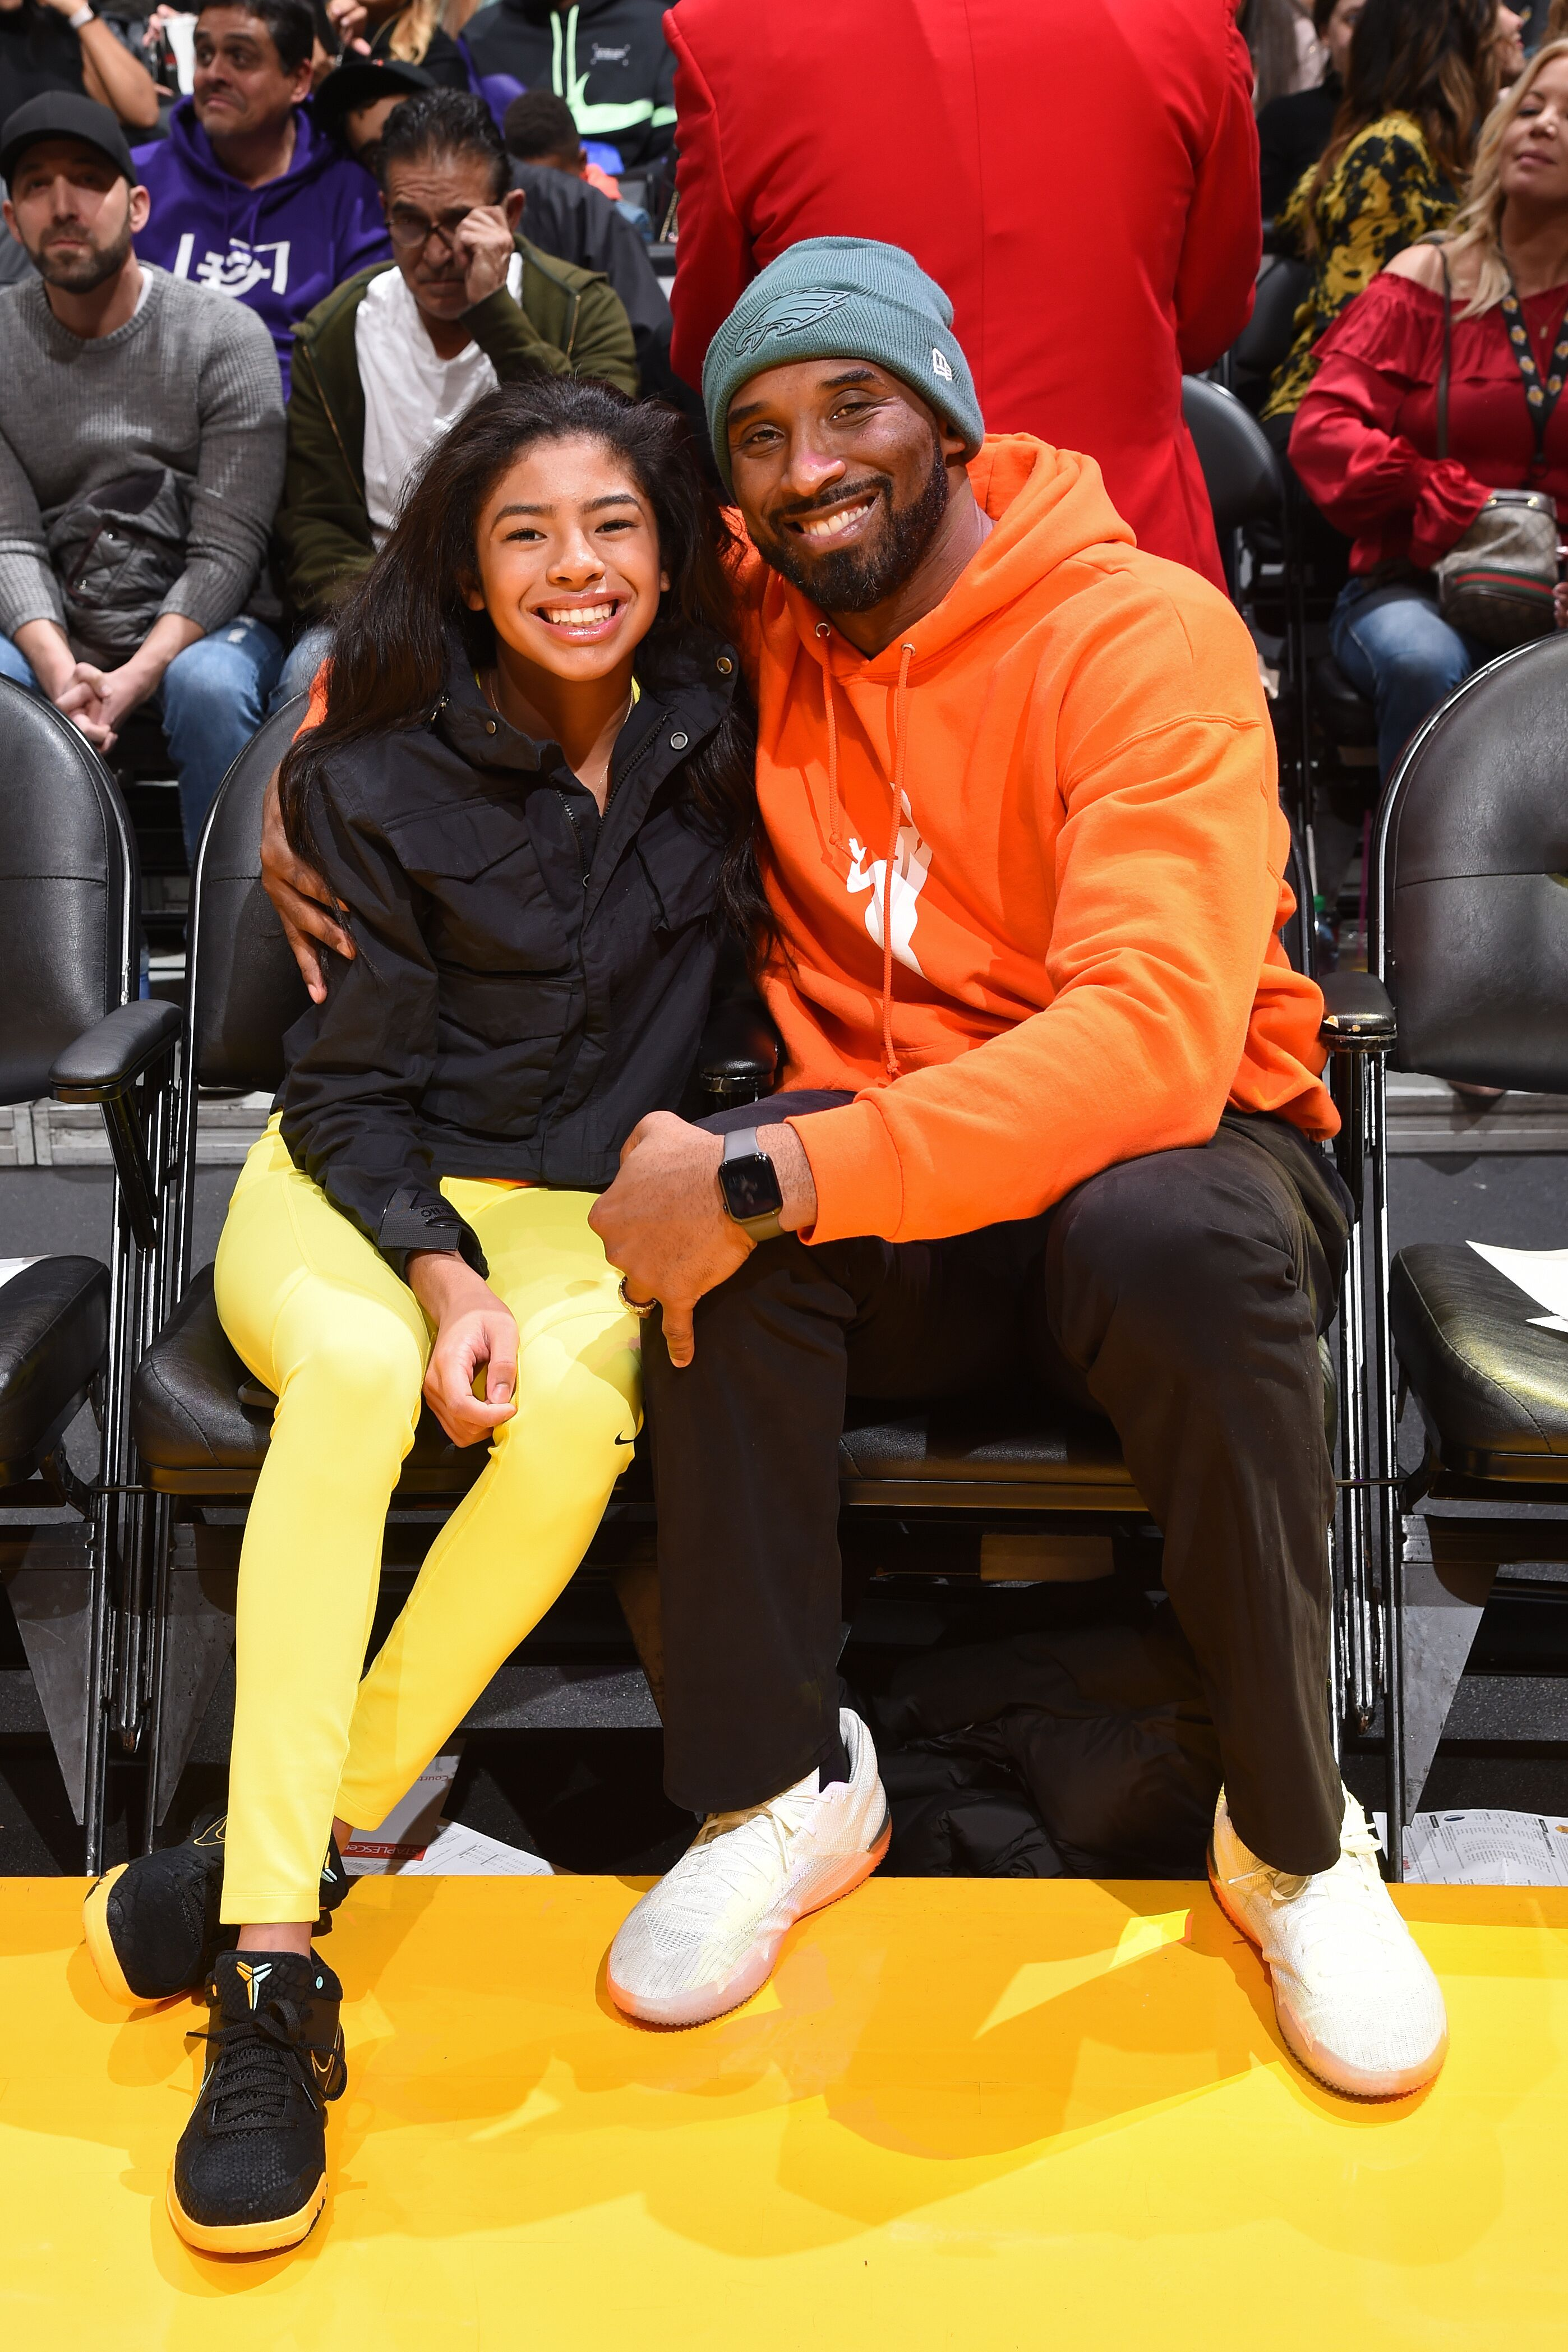 Kobe and Gianna Bryant attend a WNBA game together   Source: Getty Images/GlobalImagesUkraine